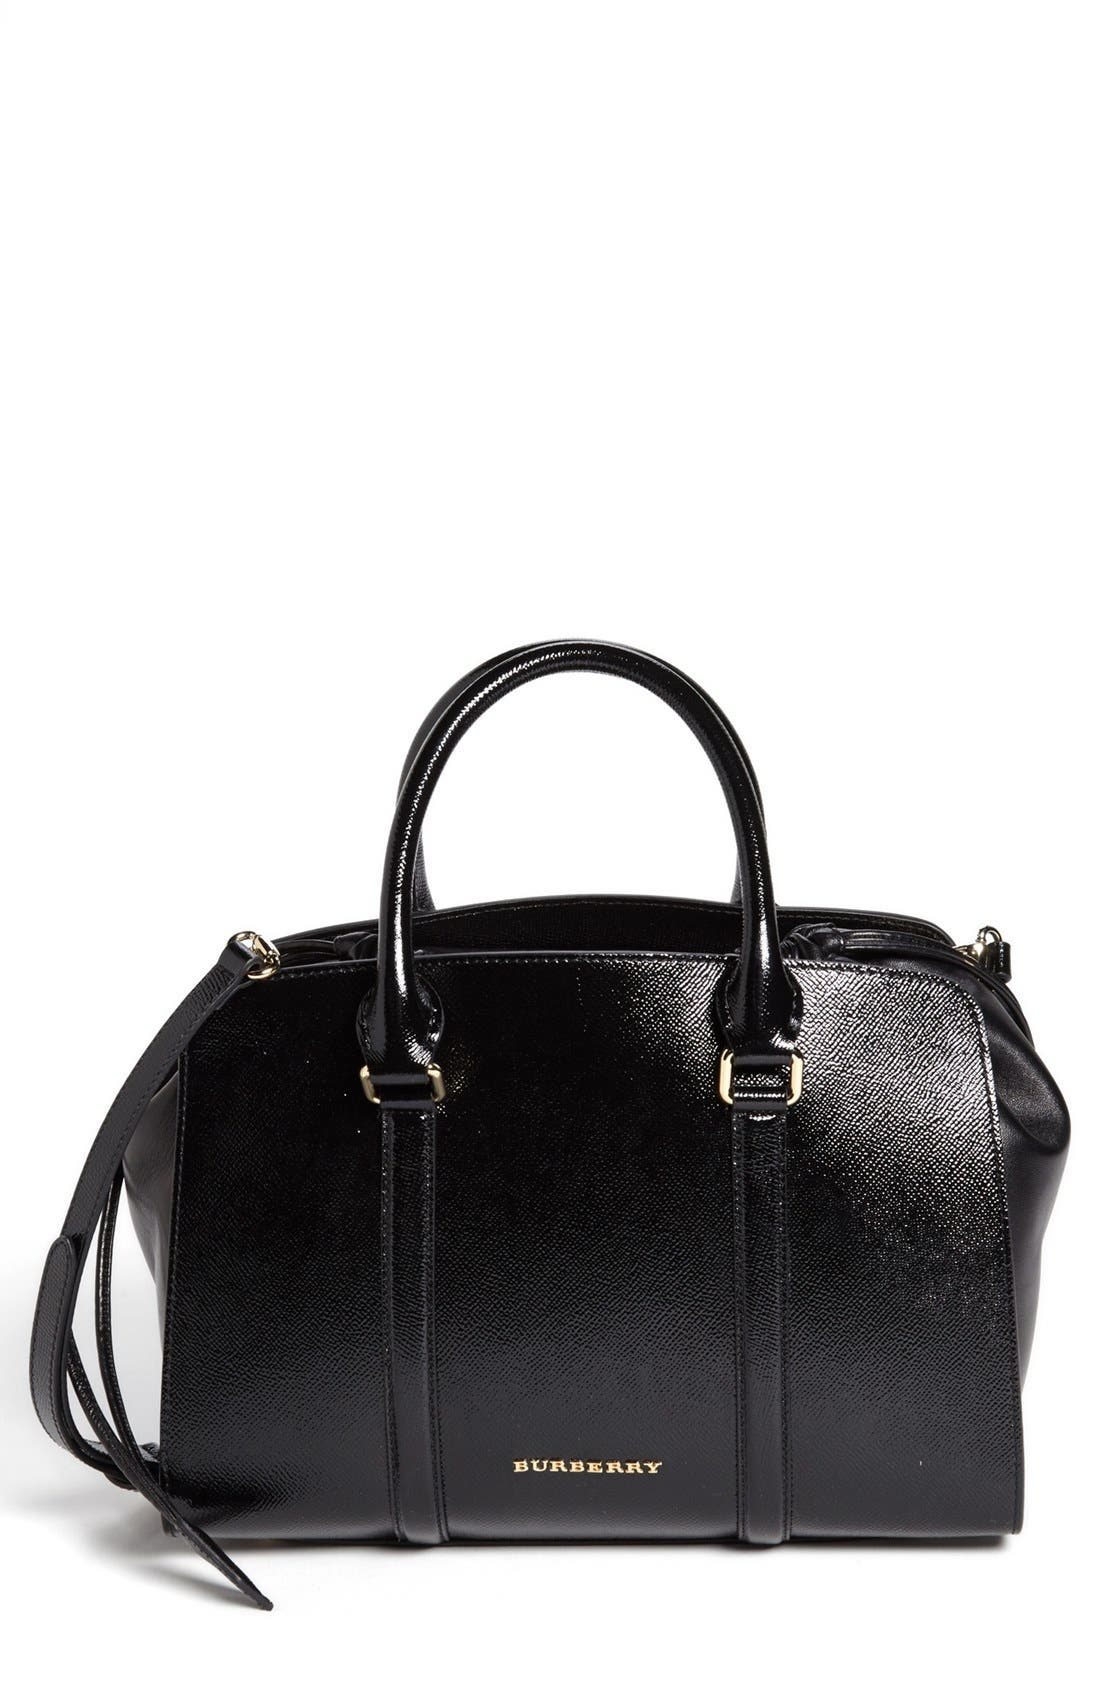 Alternate Image 1 Selected - Burberry Prorsum 'Small Dinton' Leather Satchel